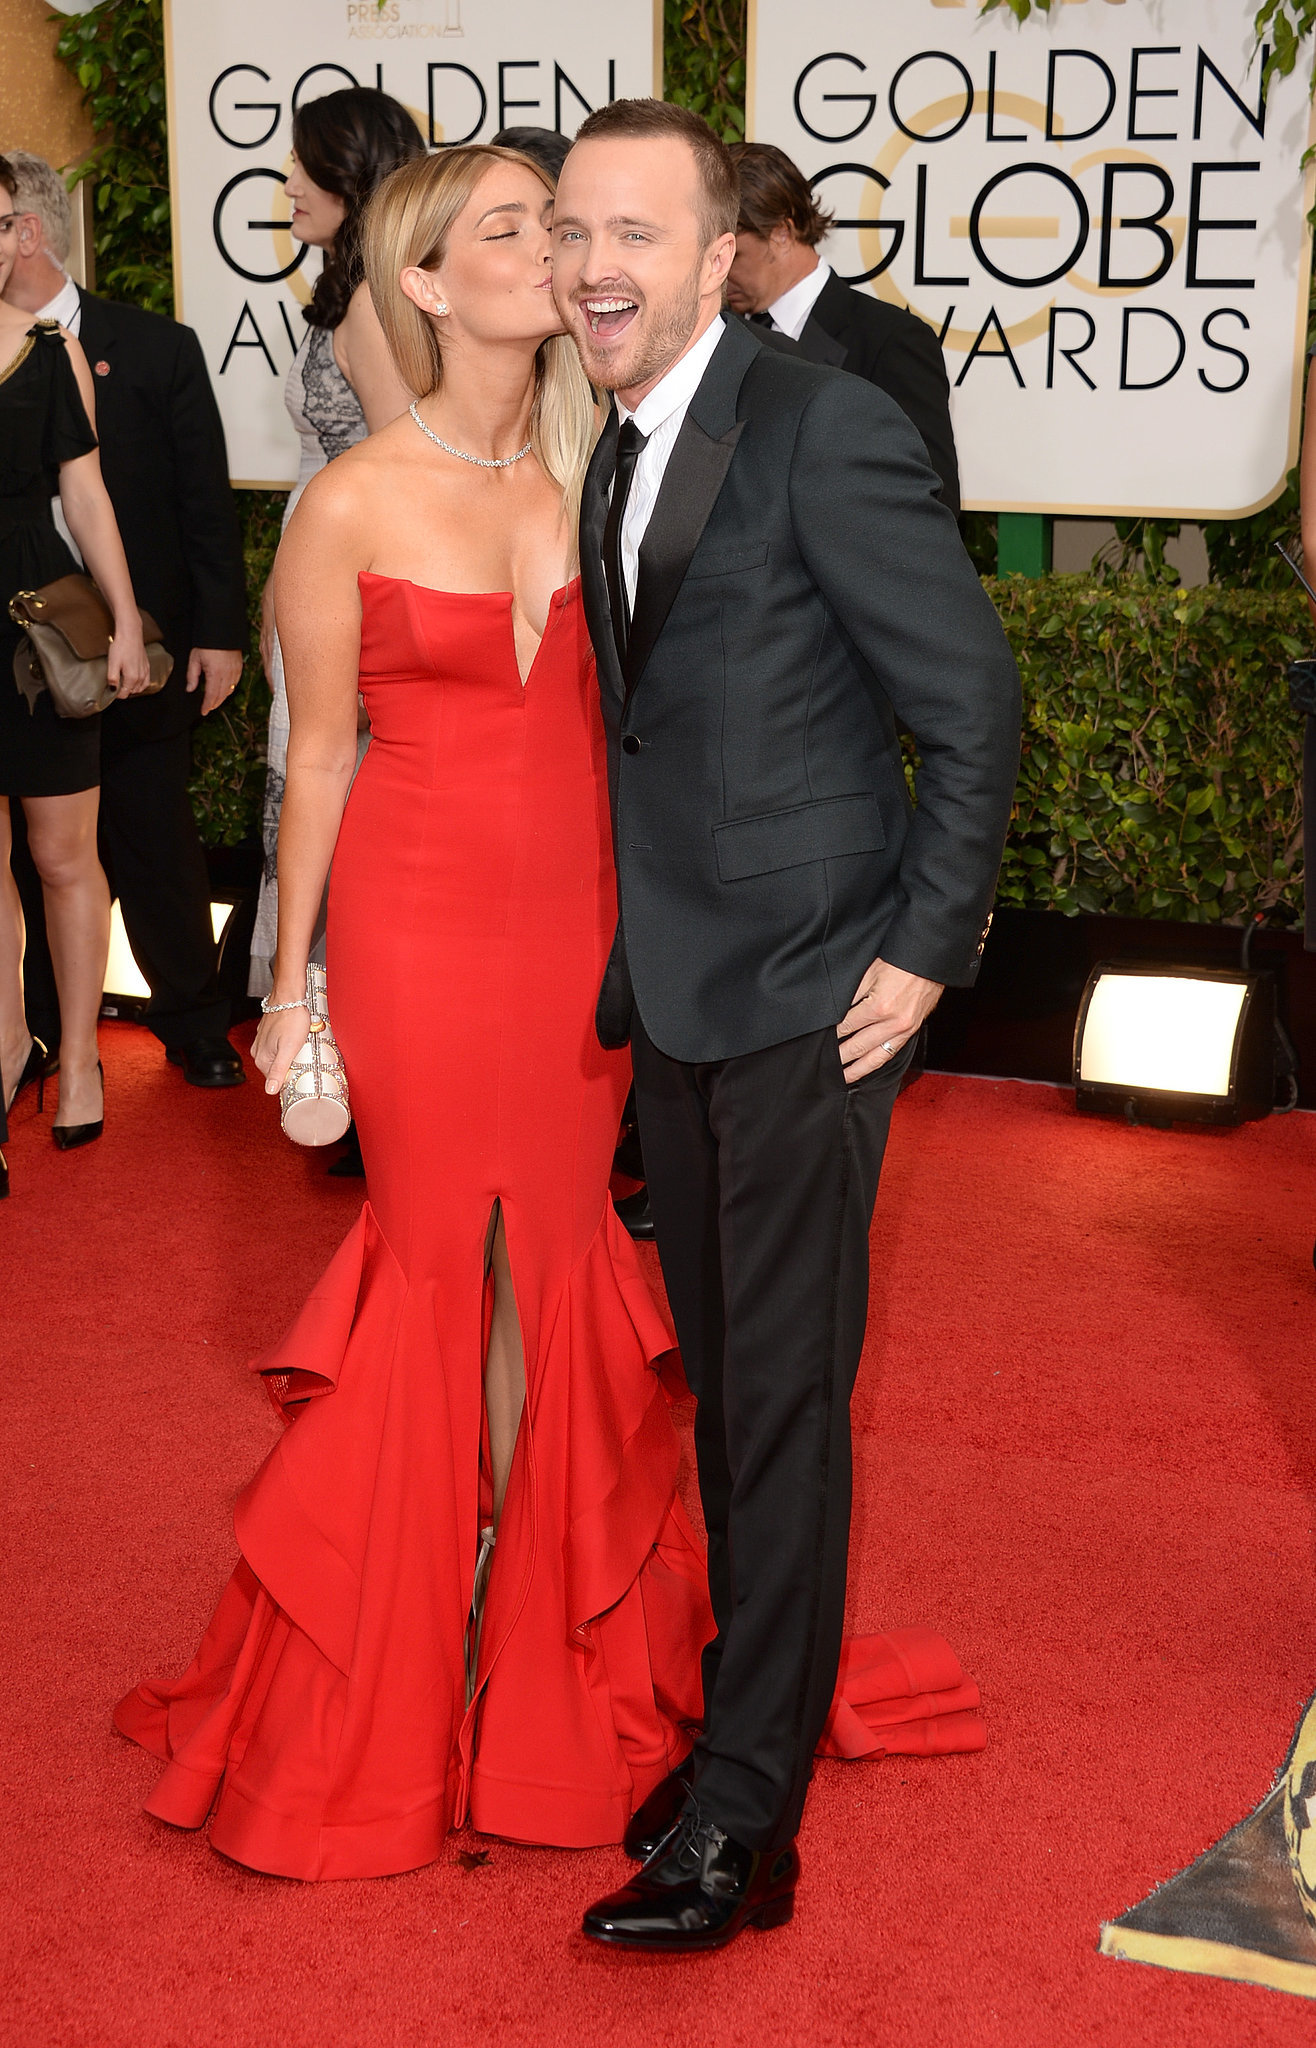 Aaron Paul got a sweet kiss on the cheek from his new wife, Lauren Parsekian, at the Golden Globes.